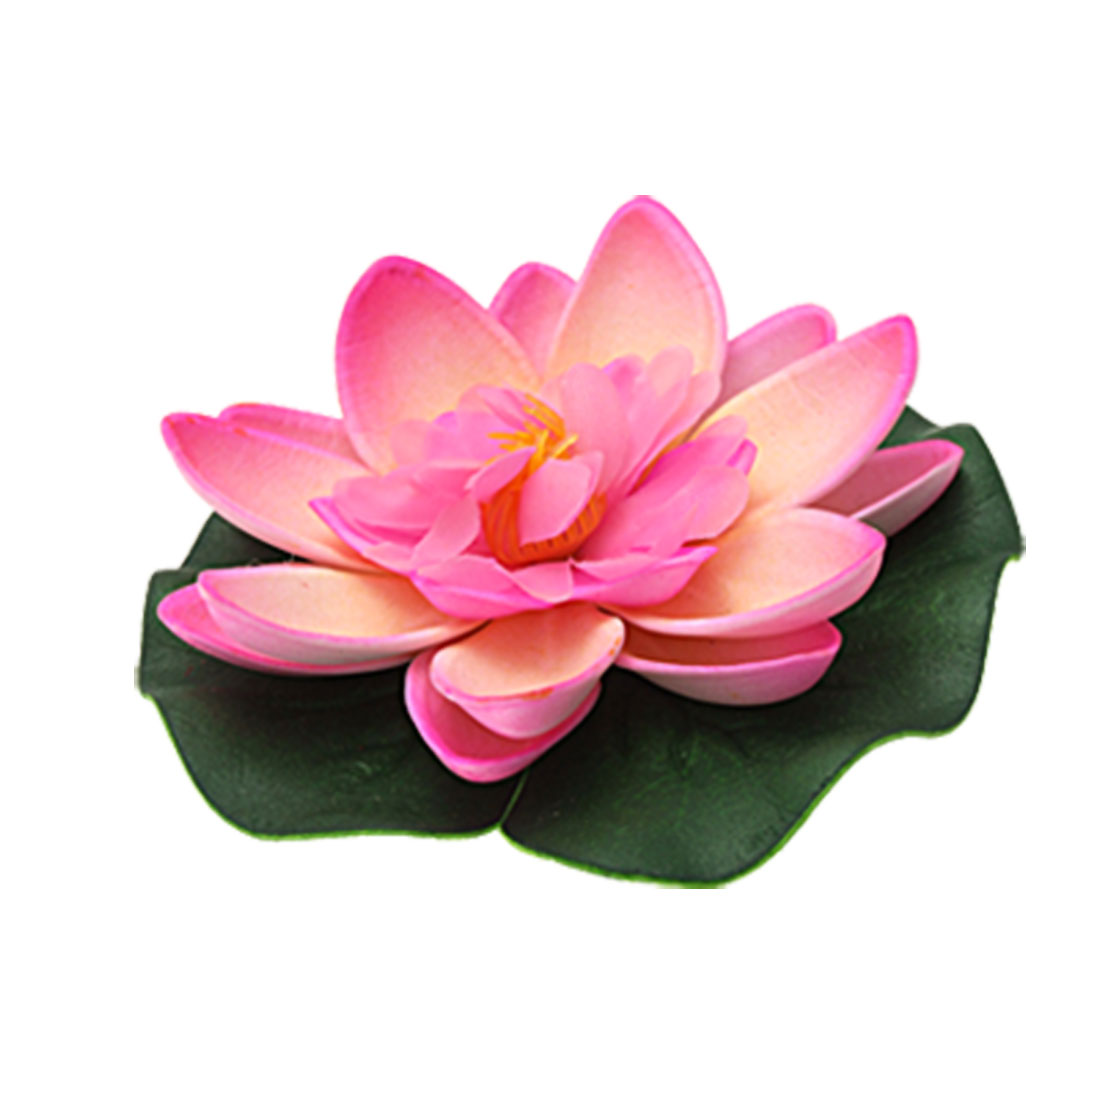 Aquarium Pond Pink Floating Foam Lotus Decor Ornament